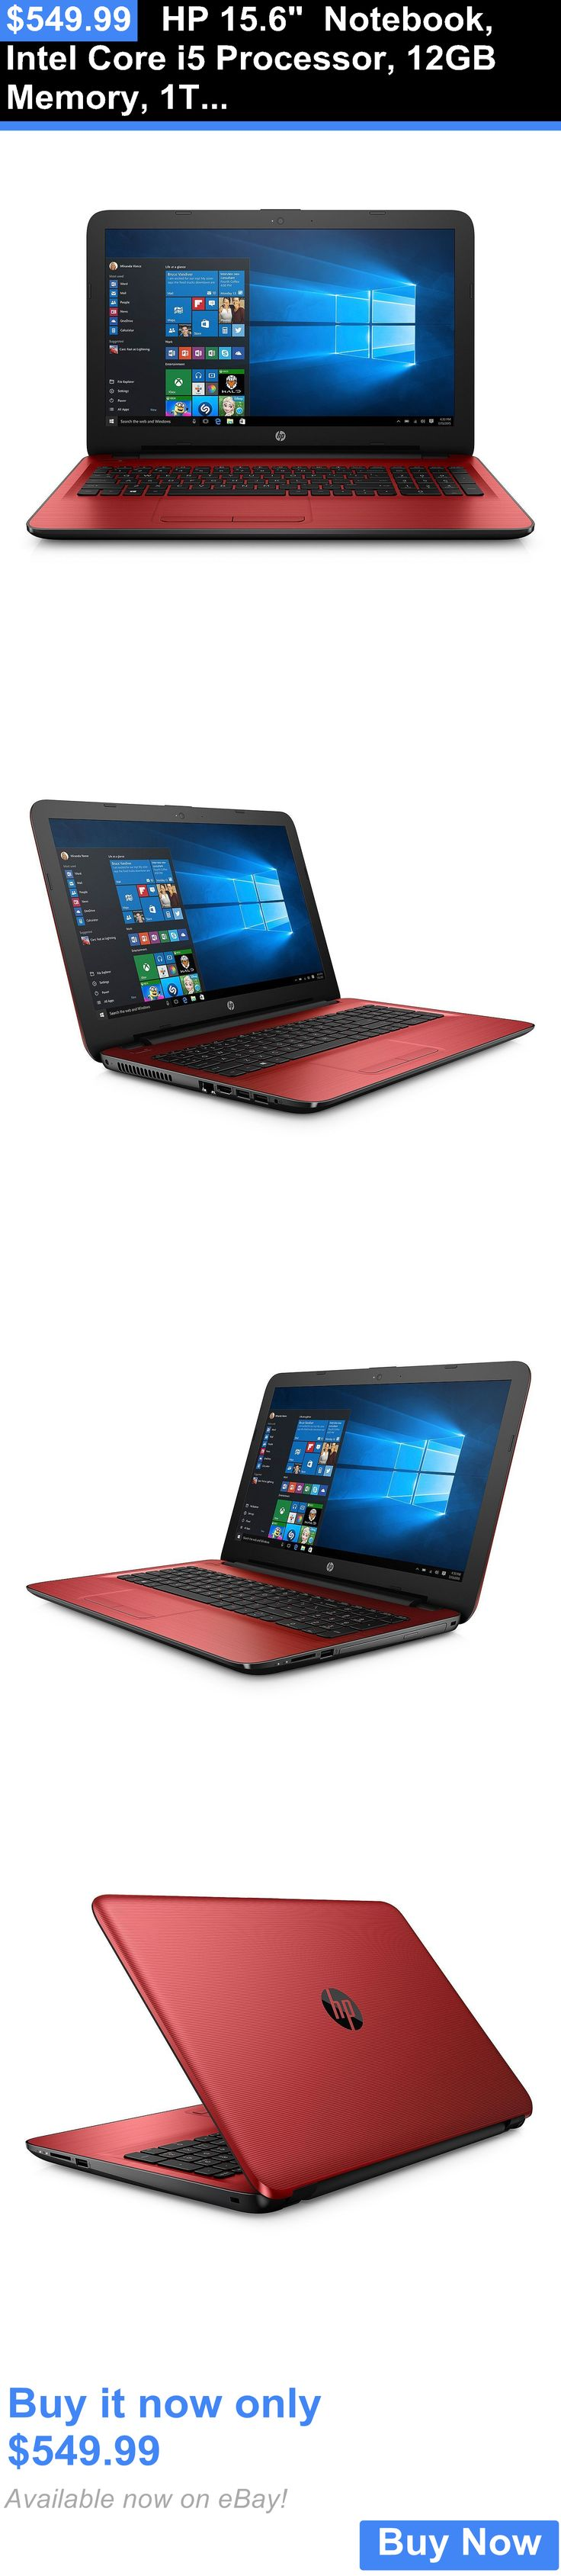 general for sale: Hp 15.6 Notebook, Intel Core I5 Processor, 12Gb Memory, 1Tb Hdd (15-Ay177cl) BUY IT NOW ONLY: $549.99